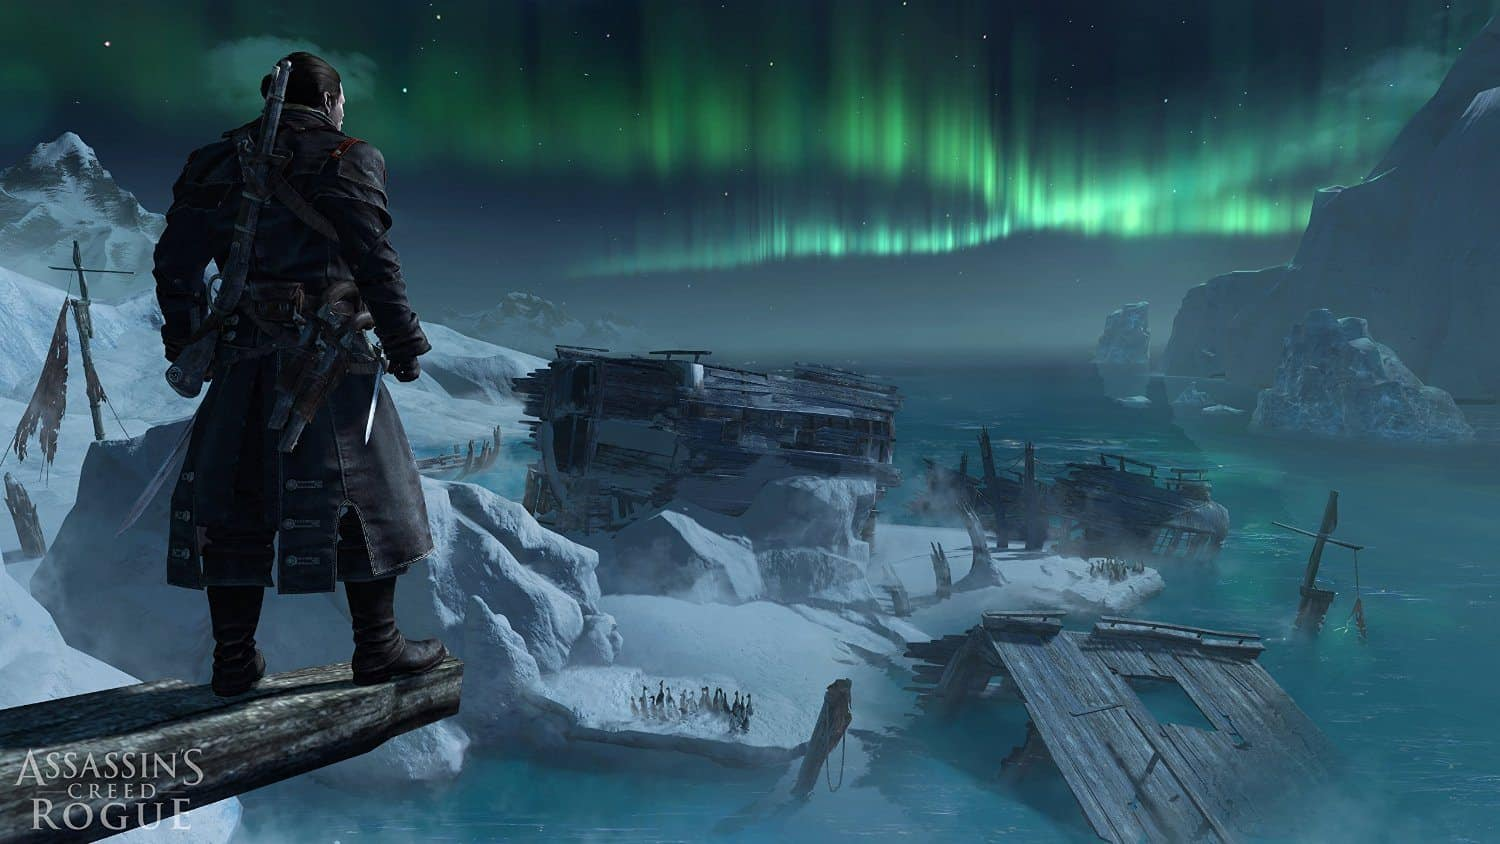 Game Review: Assassins Creed Rogue (Xbox 360)